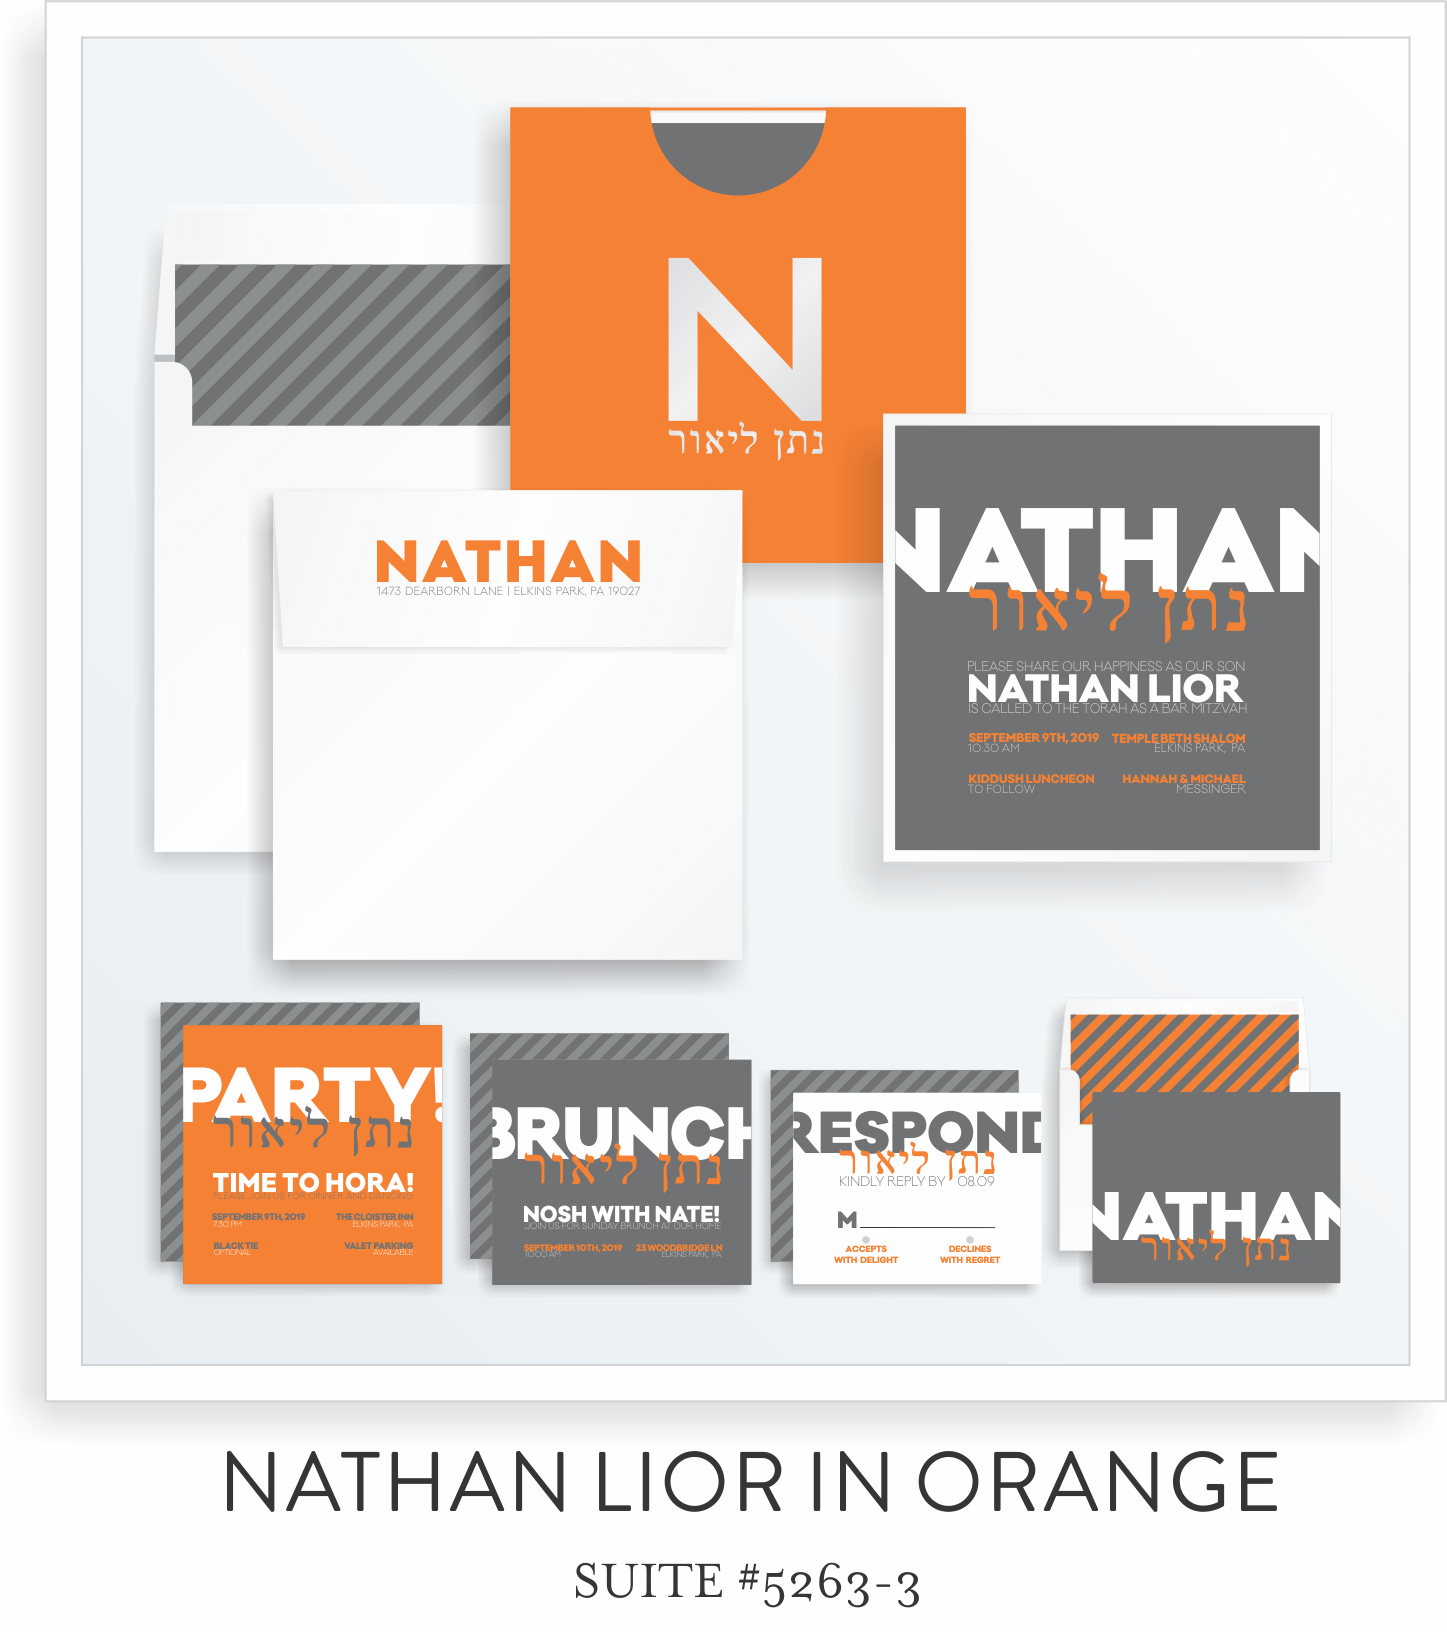 5263-3 NATHAN LIOR IN ORANGE SUITE THUMB.png